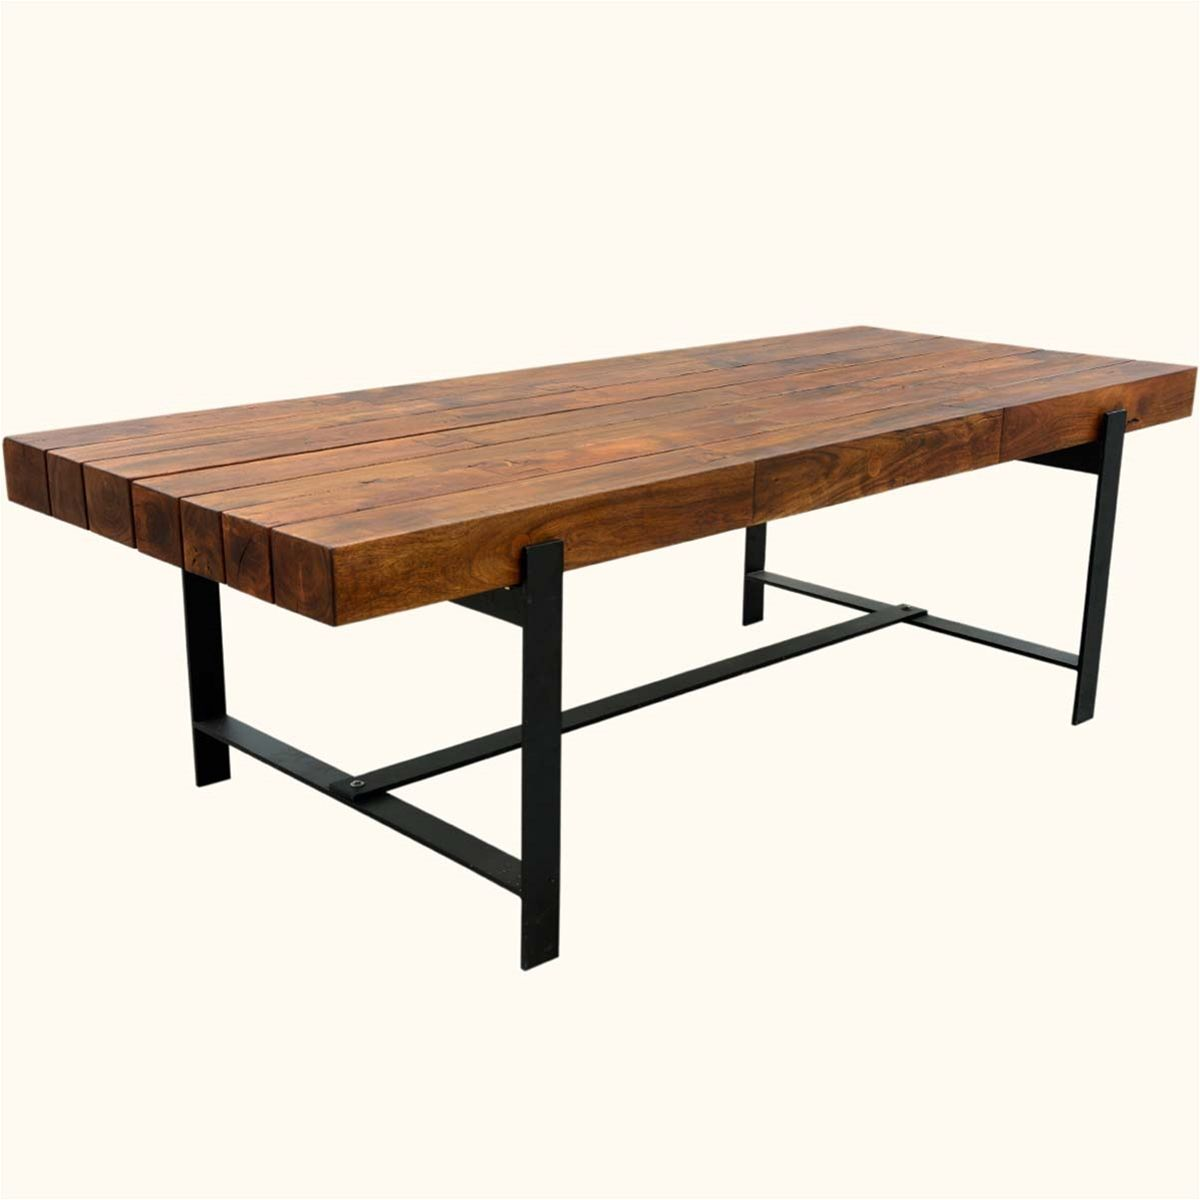 Productimage Rustic Industrial Dining Table Metal Dining Table